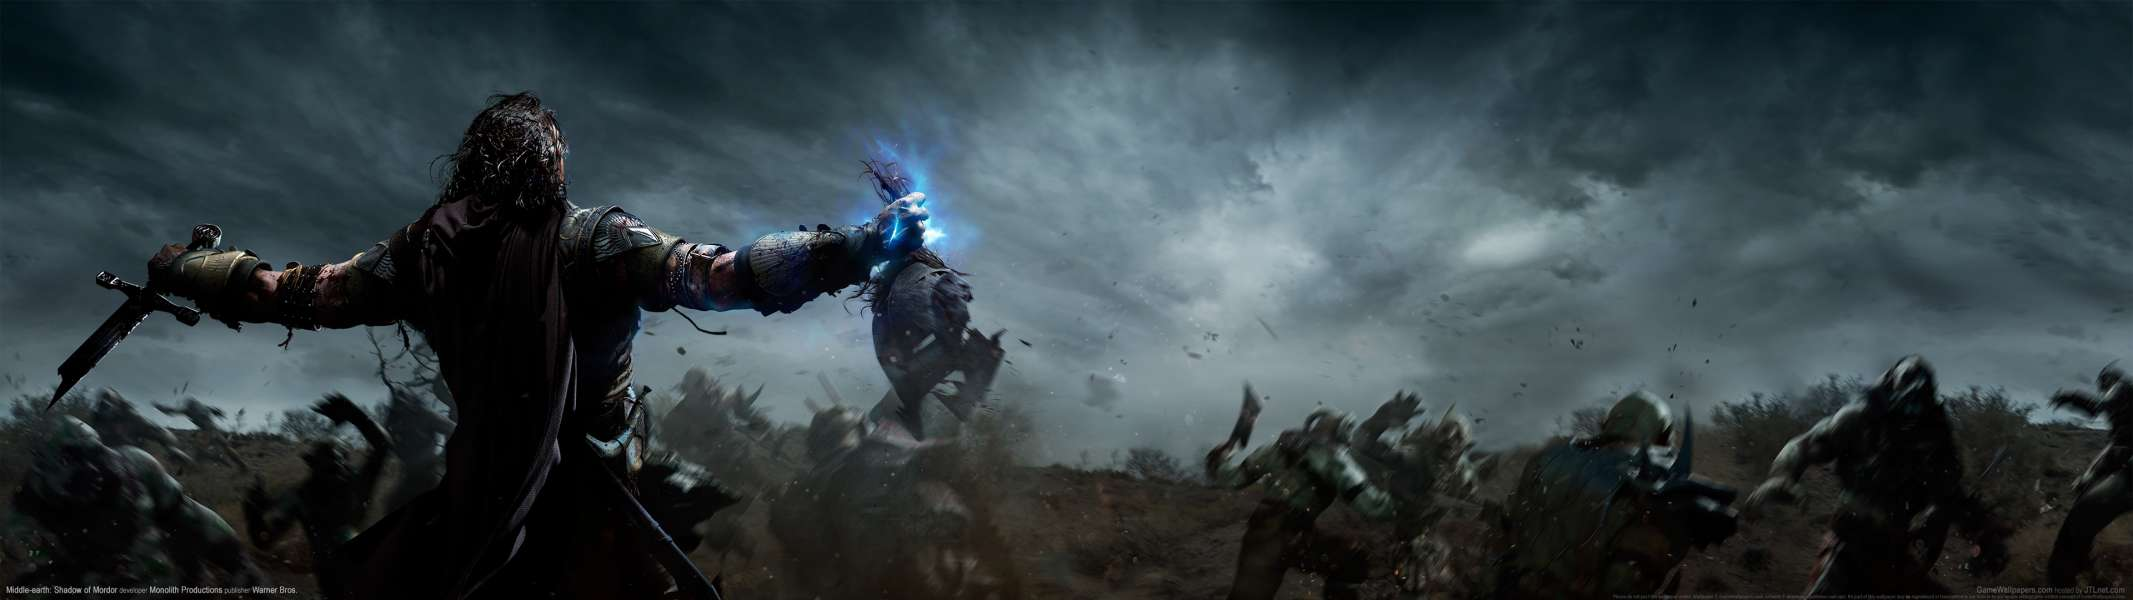 Middle-earth: Shadow of Mordor dual screen wallpaper or background